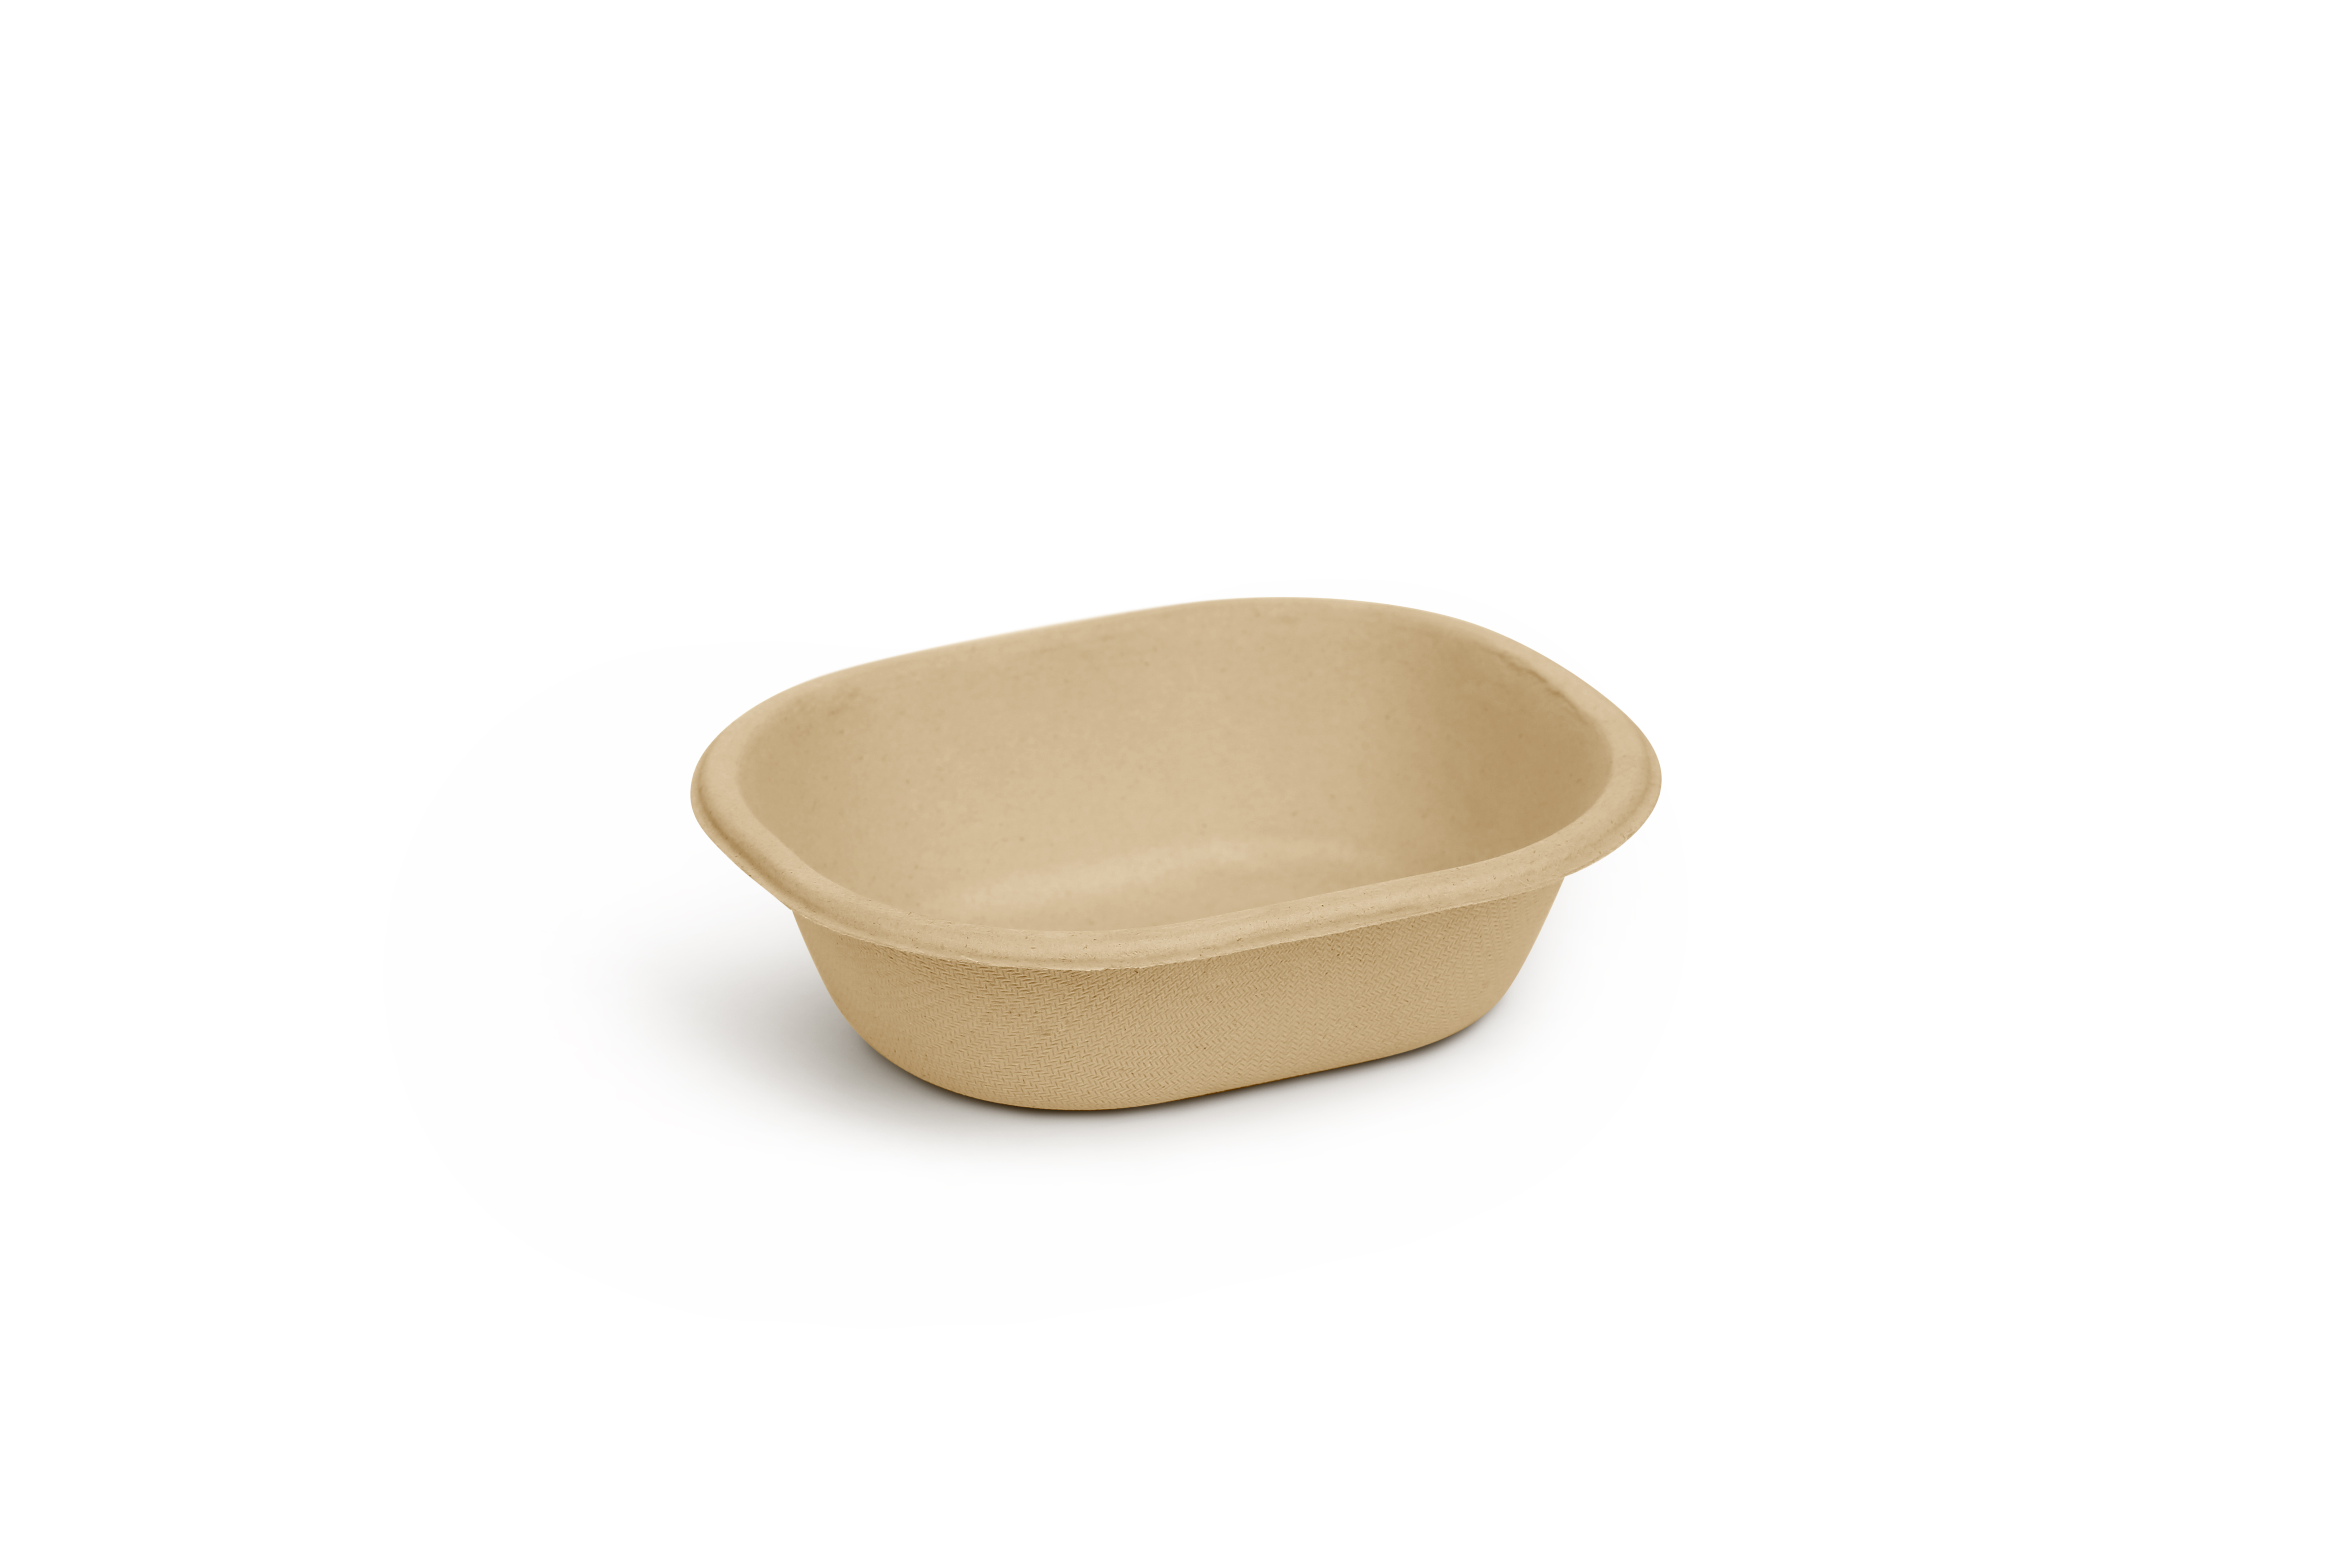 Back to nature 1000 pieces 250 ml bowl bagasse biodegradable